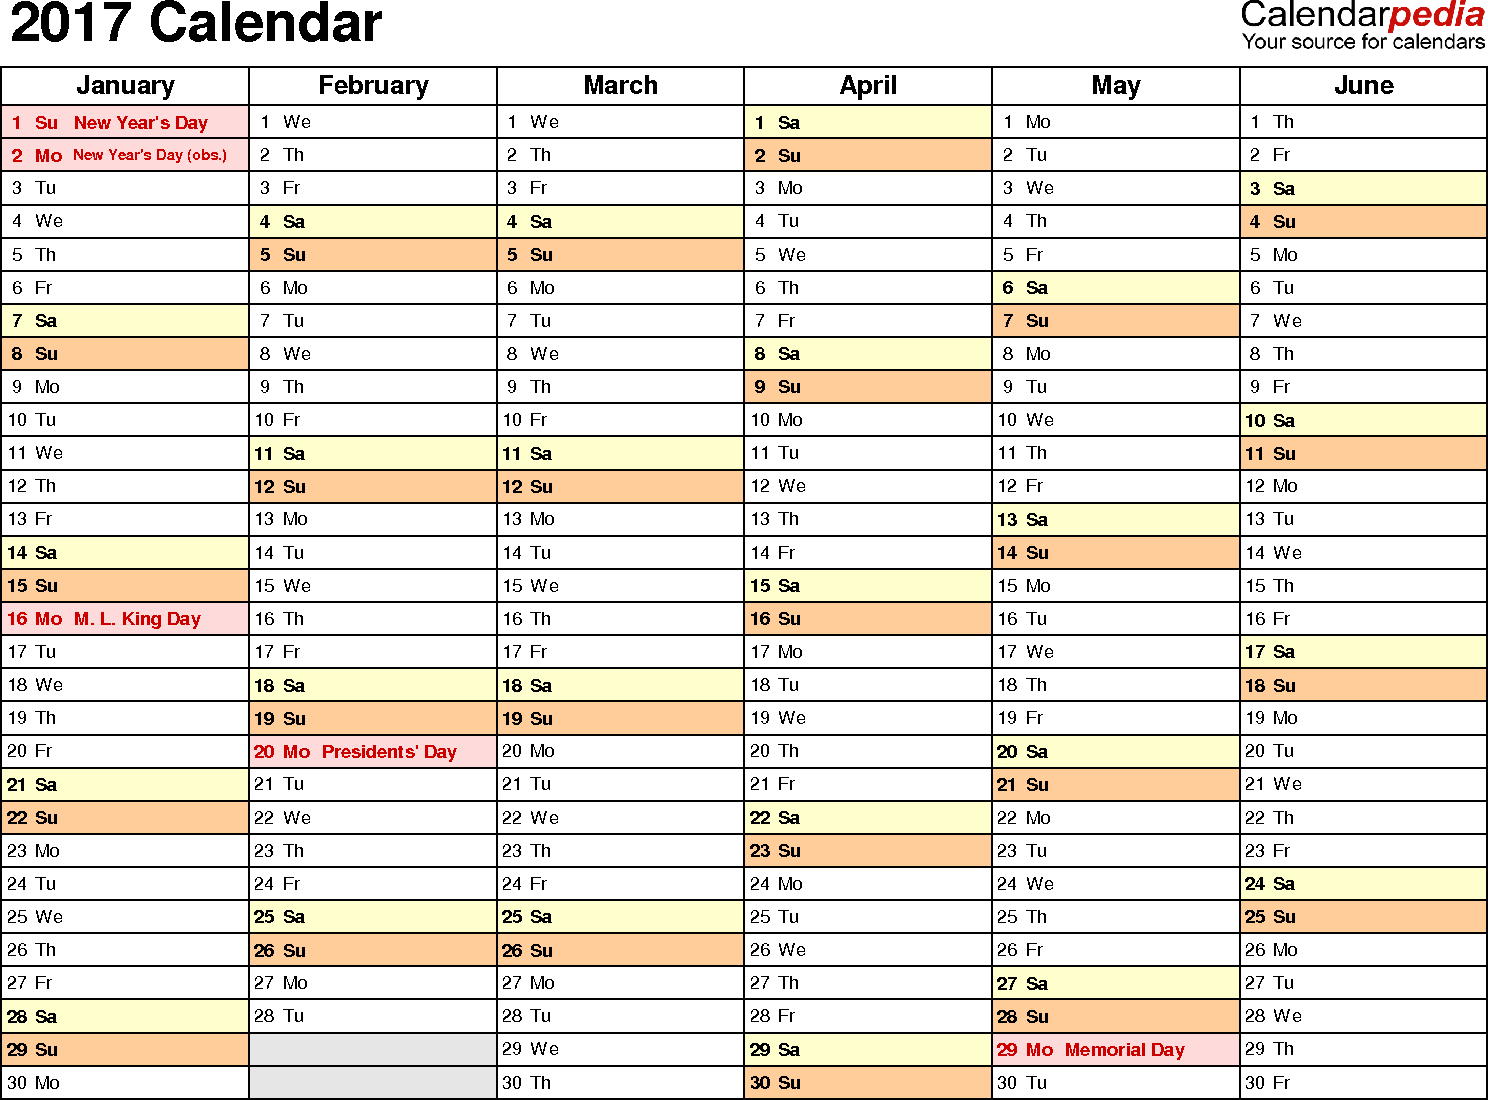 Ediblewildsus  Surprising  Calendar  Download  Free Printable Excel Templates Xls With Foxy Template   Calendar For Excel Months Horizontally  Pages Landscape Orientation With Extraordinary Sort Excel By Color Also Find And Delete In Excel In Addition Turn Pdf Into Excel And Import Email Addresses From Excel To Outlook As Well As How Many Rows In Excel Additionally Exponential In Excel From Calendarpediacom With Ediblewildsus  Foxy  Calendar  Download  Free Printable Excel Templates Xls With Extraordinary Template   Calendar For Excel Months Horizontally  Pages Landscape Orientation And Surprising Sort Excel By Color Also Find And Delete In Excel In Addition Turn Pdf Into Excel From Calendarpediacom